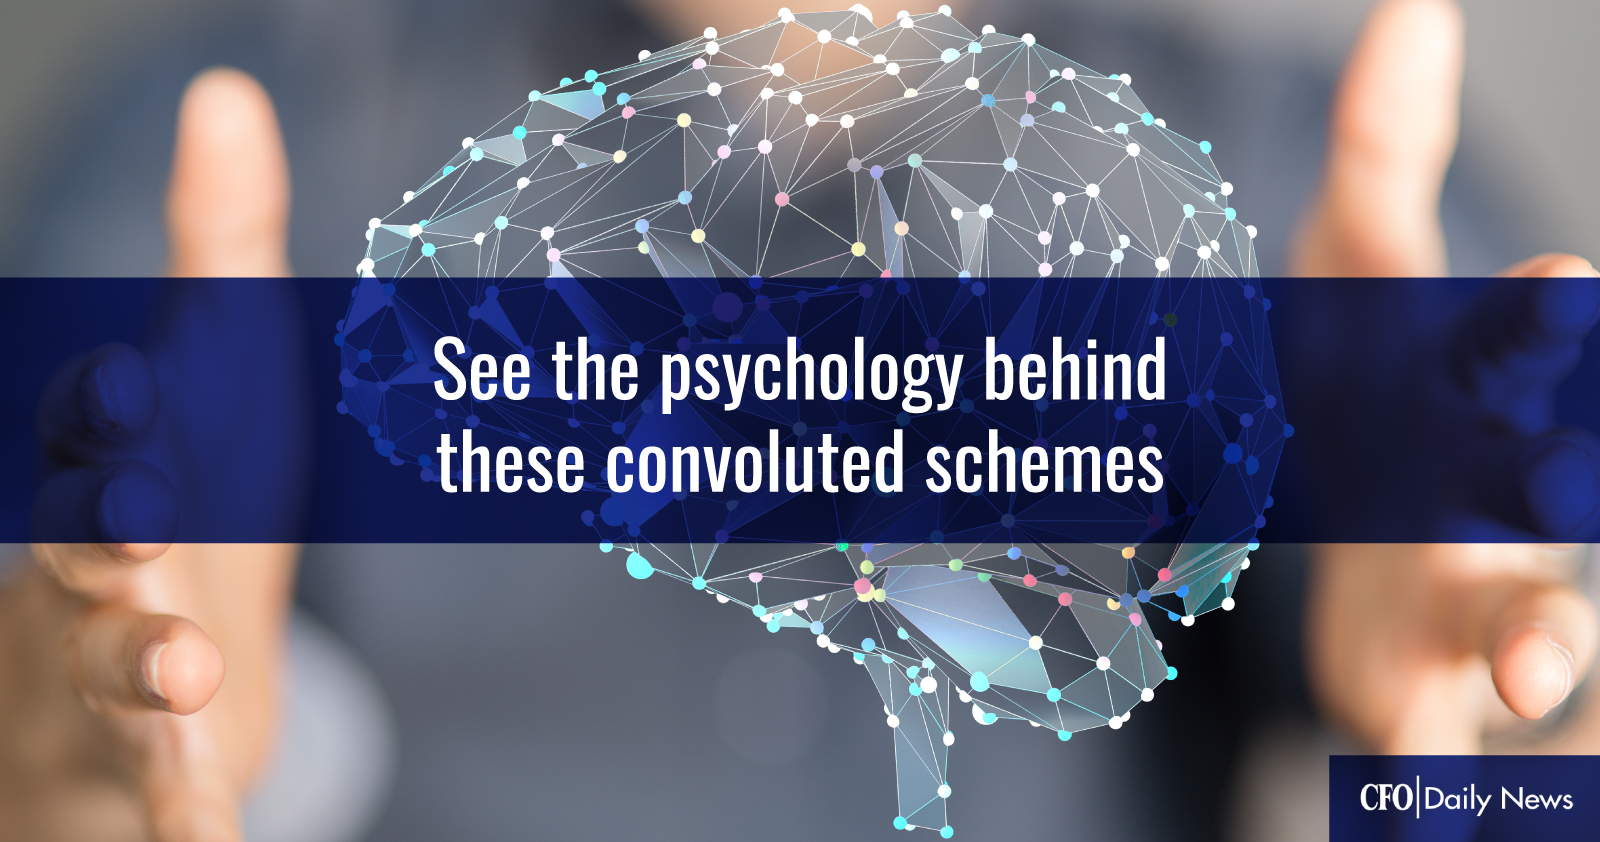 see the psychology behind these convoluted schemes